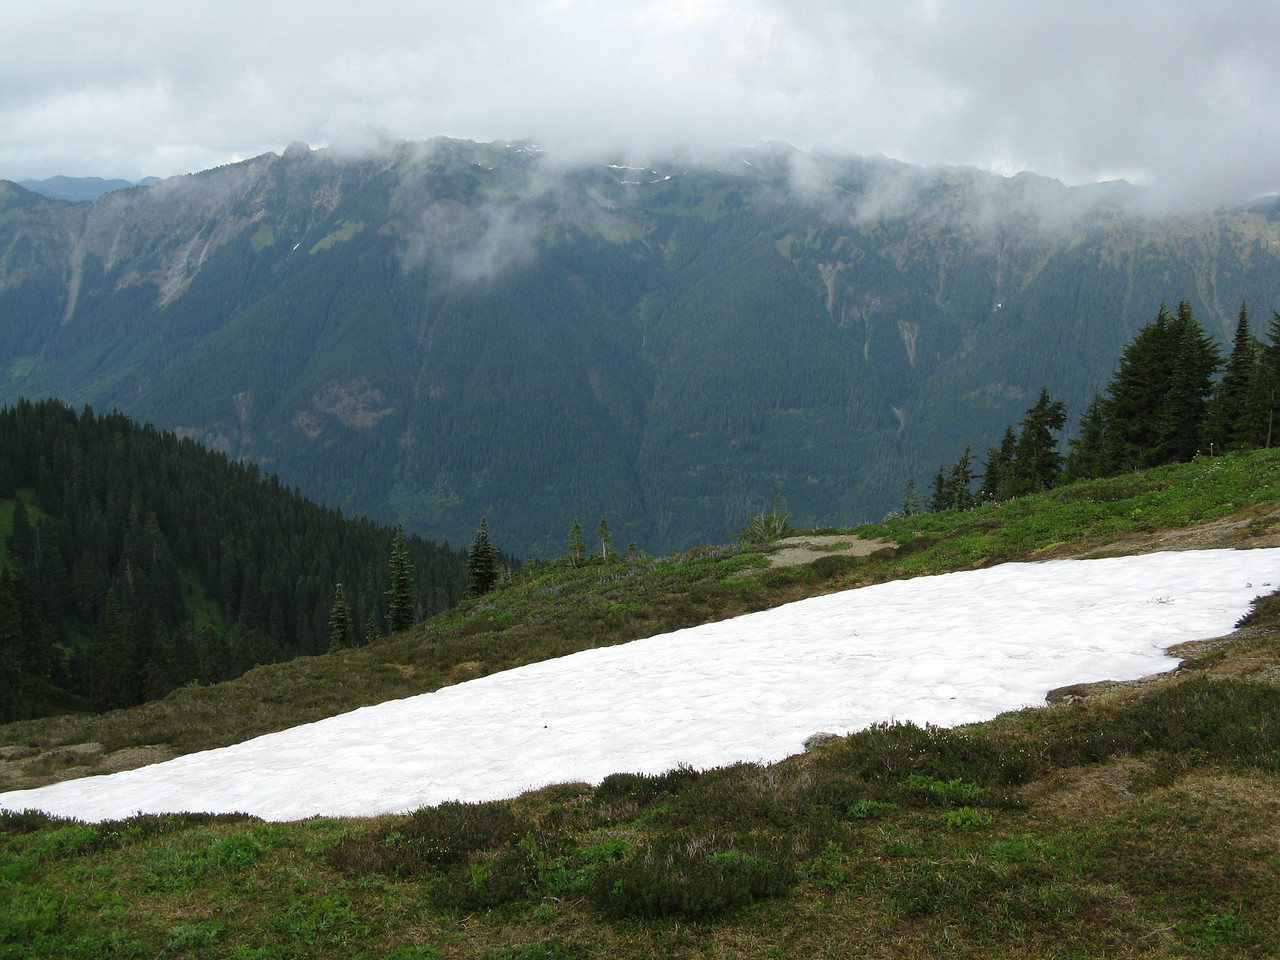 Looking across a small snow field to another ridge in the distance.